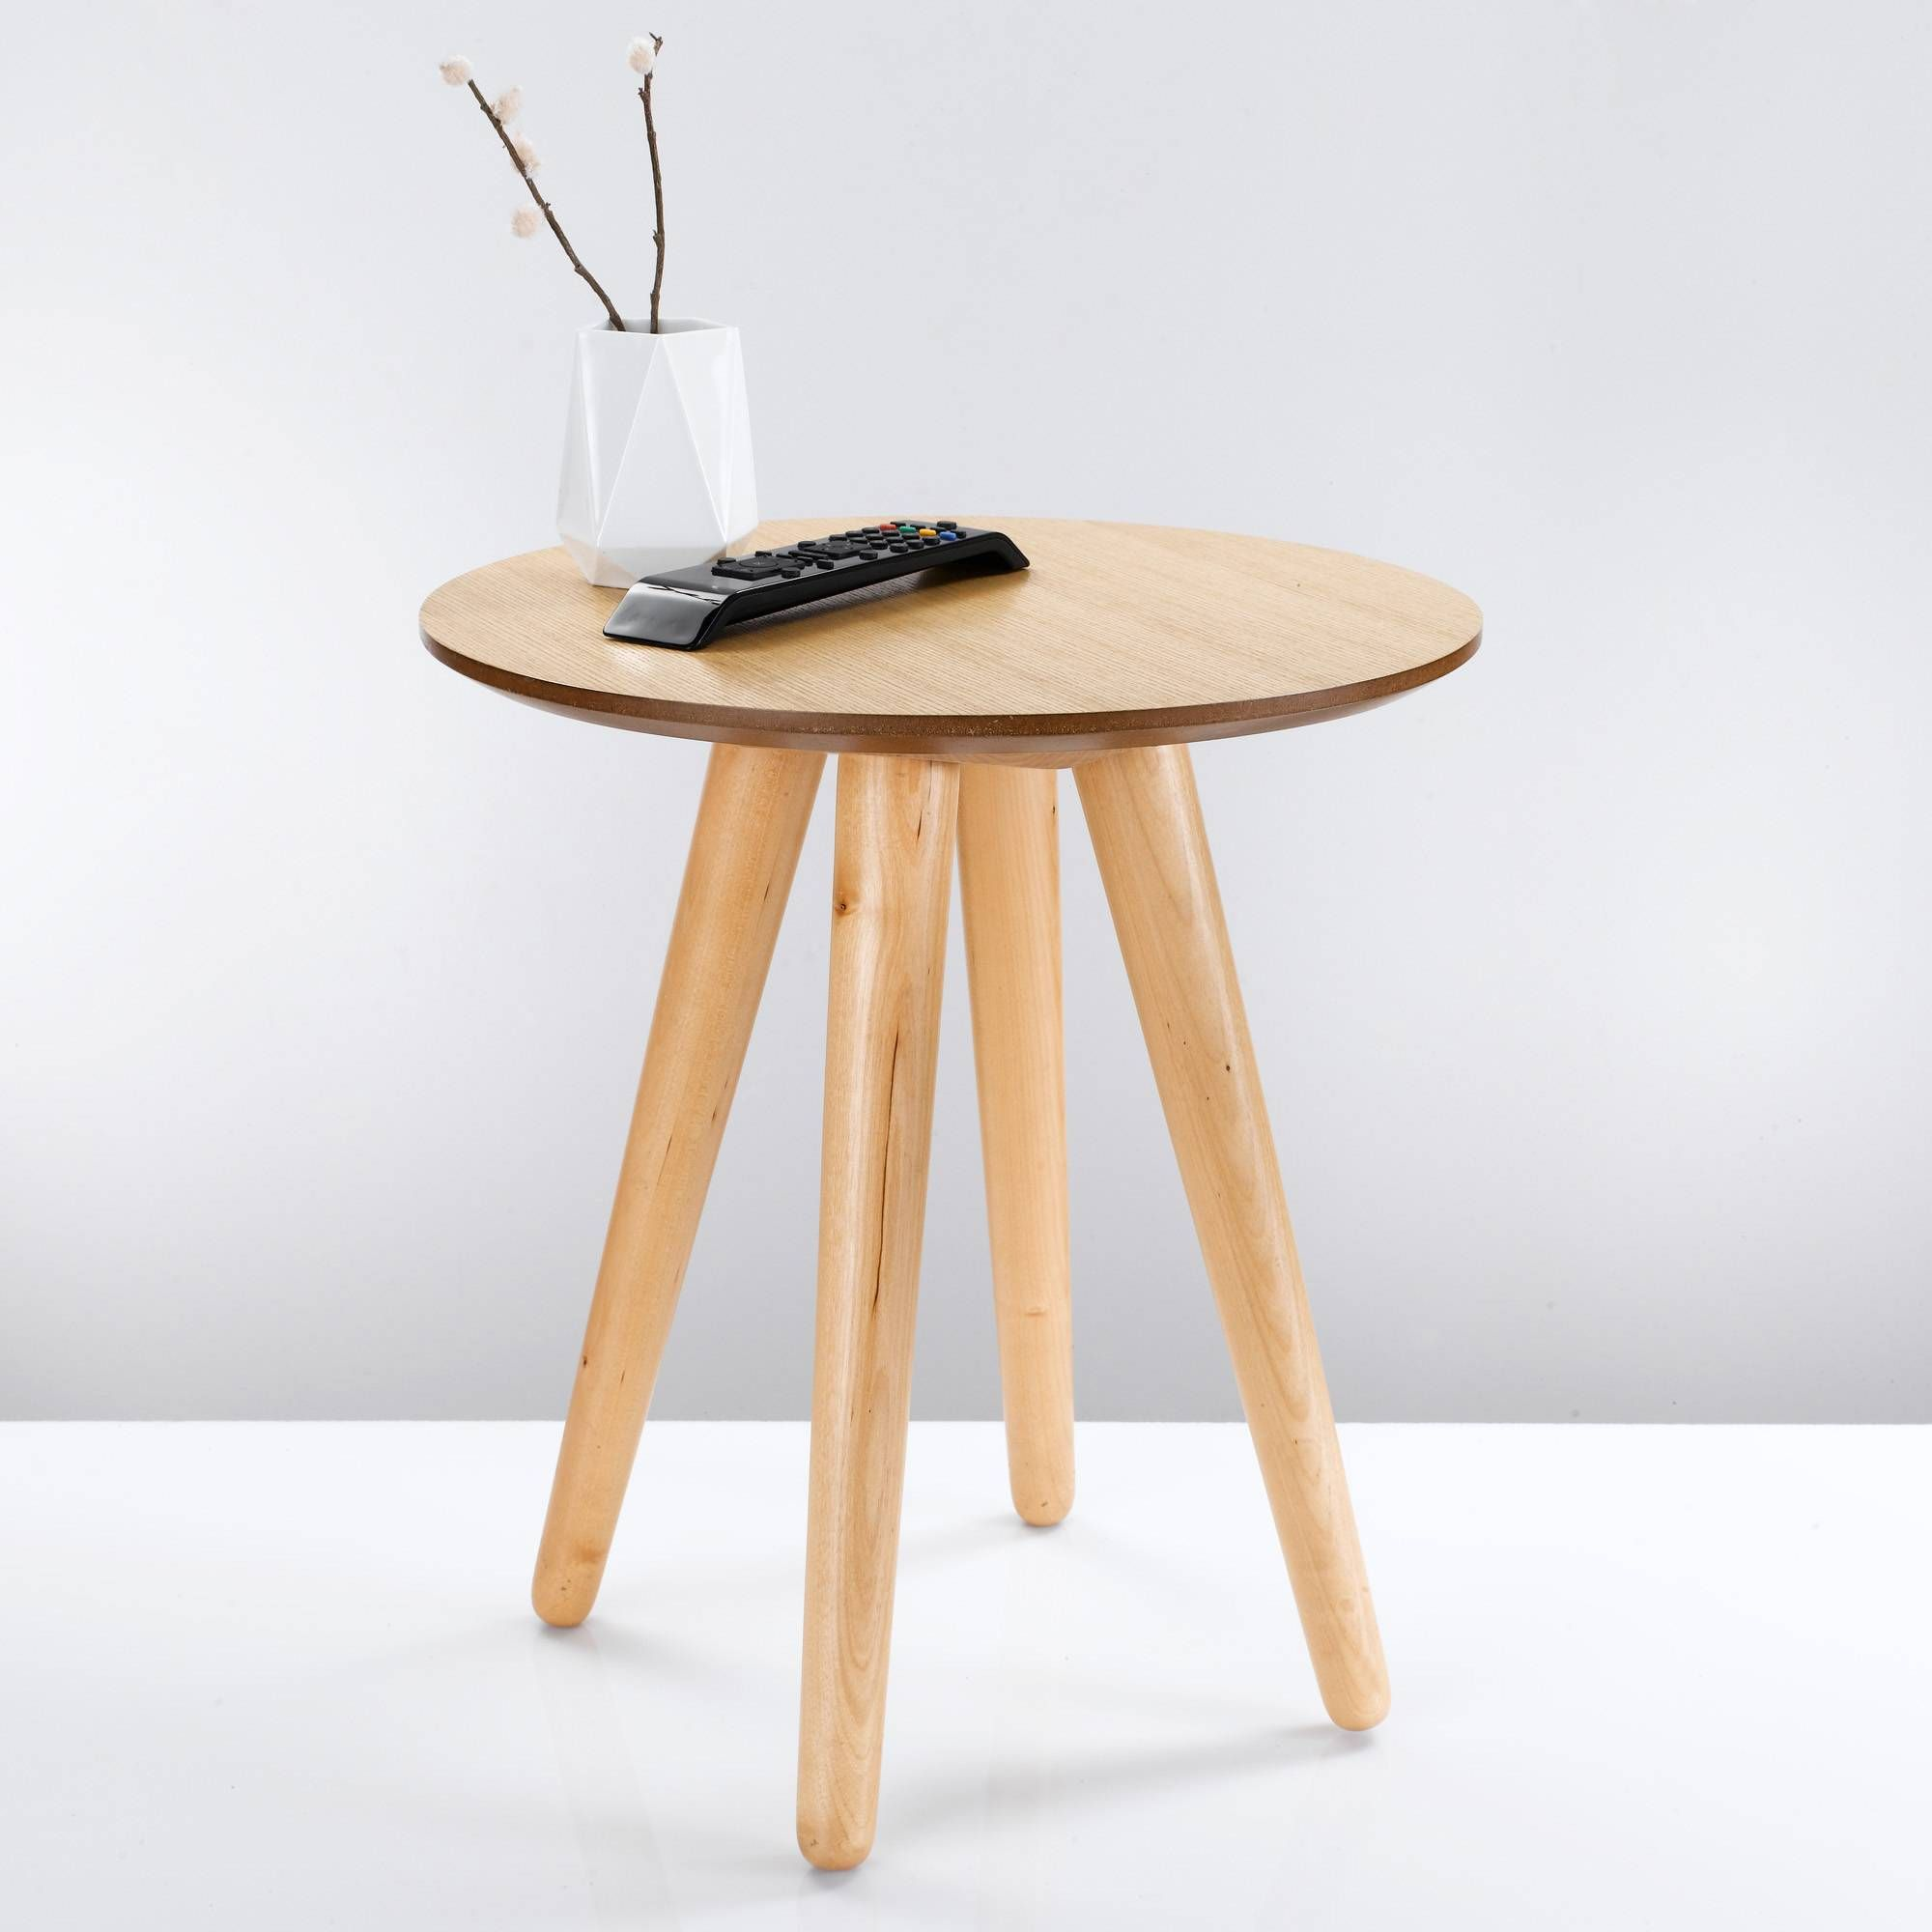 0d0b6ced399fb1787212962c63d26066 Meilleur De De Table Basse Scandinave La Redoute